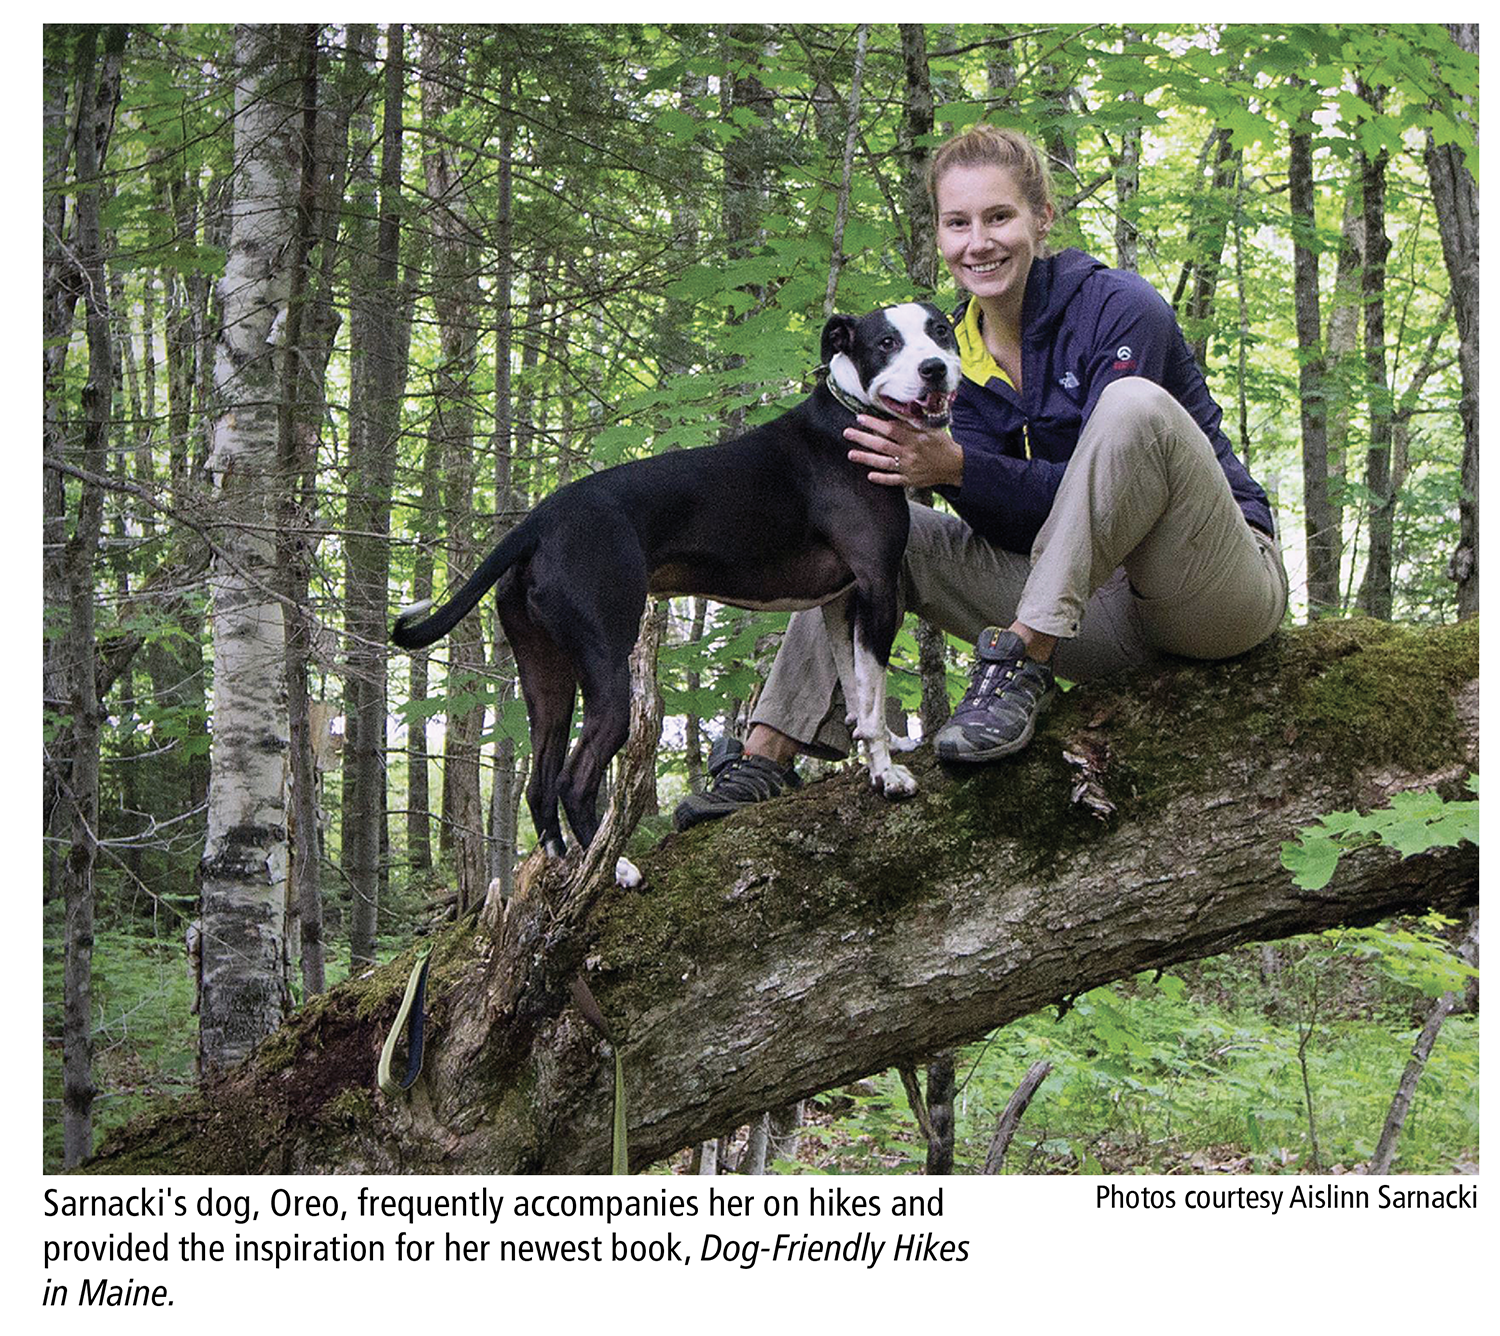 Sarnacki's dog, Oreo, frequently accompanies her on hikes and provided the inspiration for her newest book, Dog-Friendly Hikes in Maine. Photos courtesy Aislinn Sarnacki